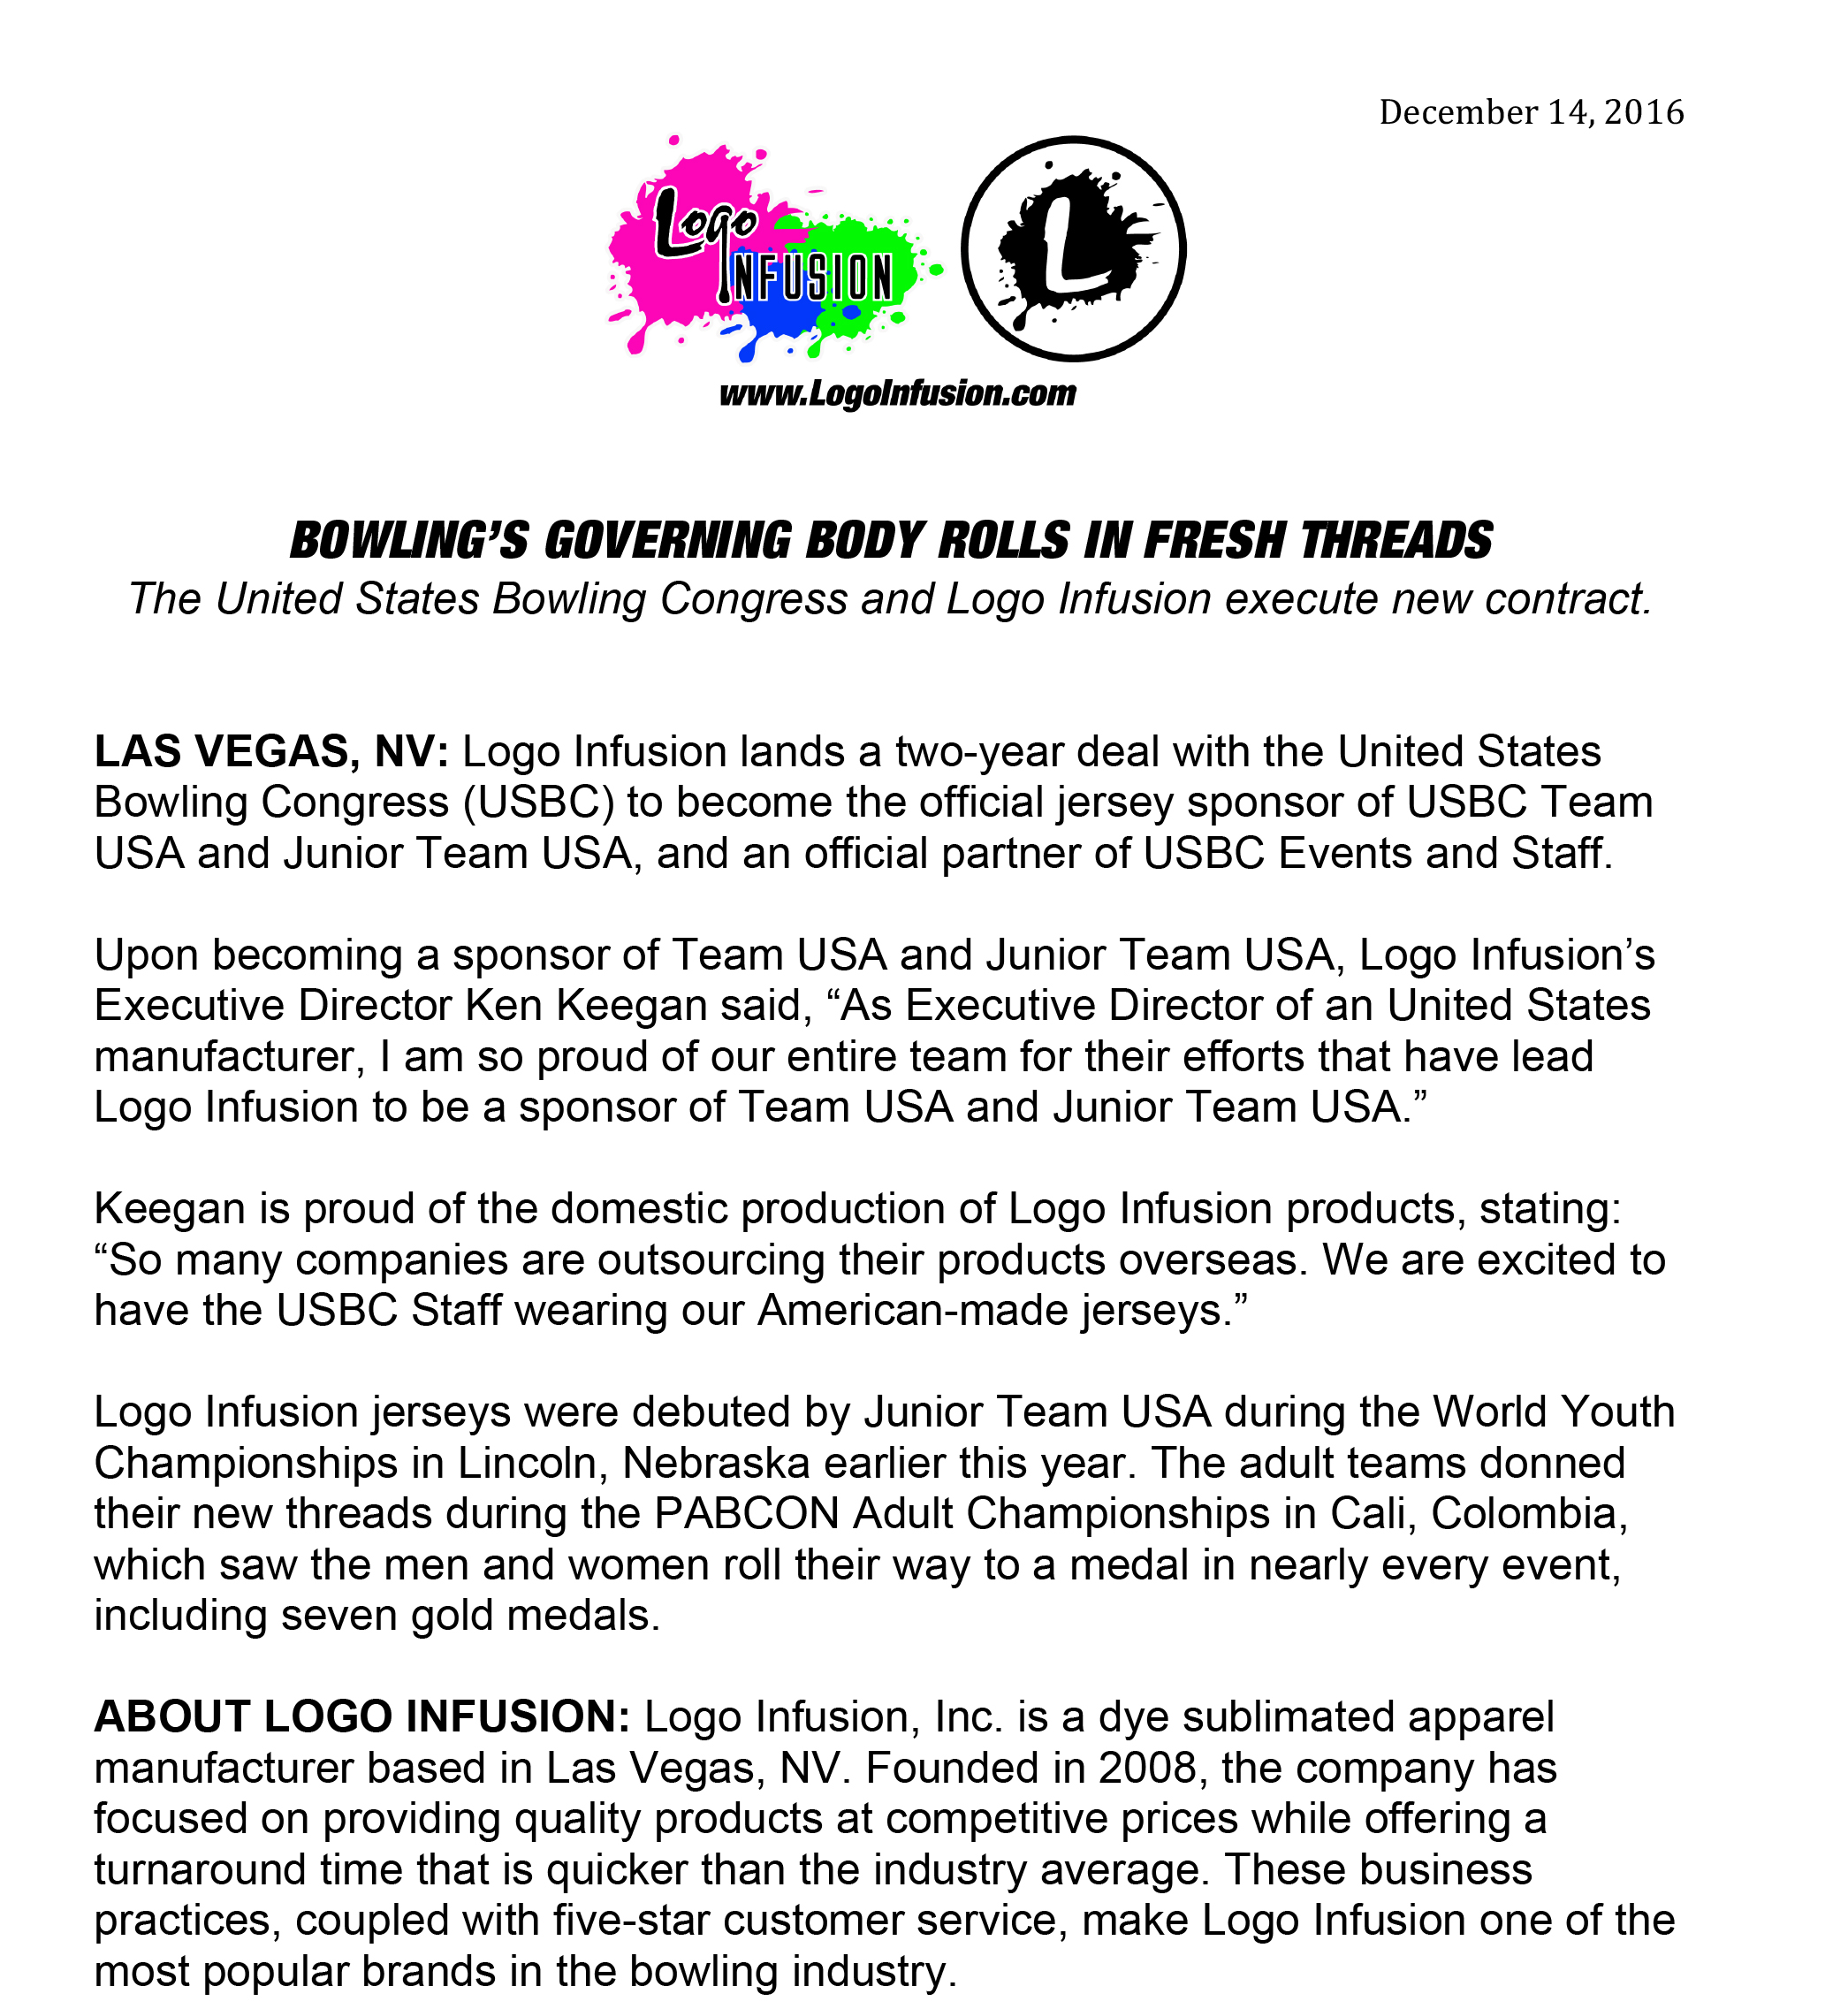 usbc-team-usa-agreement.jpg